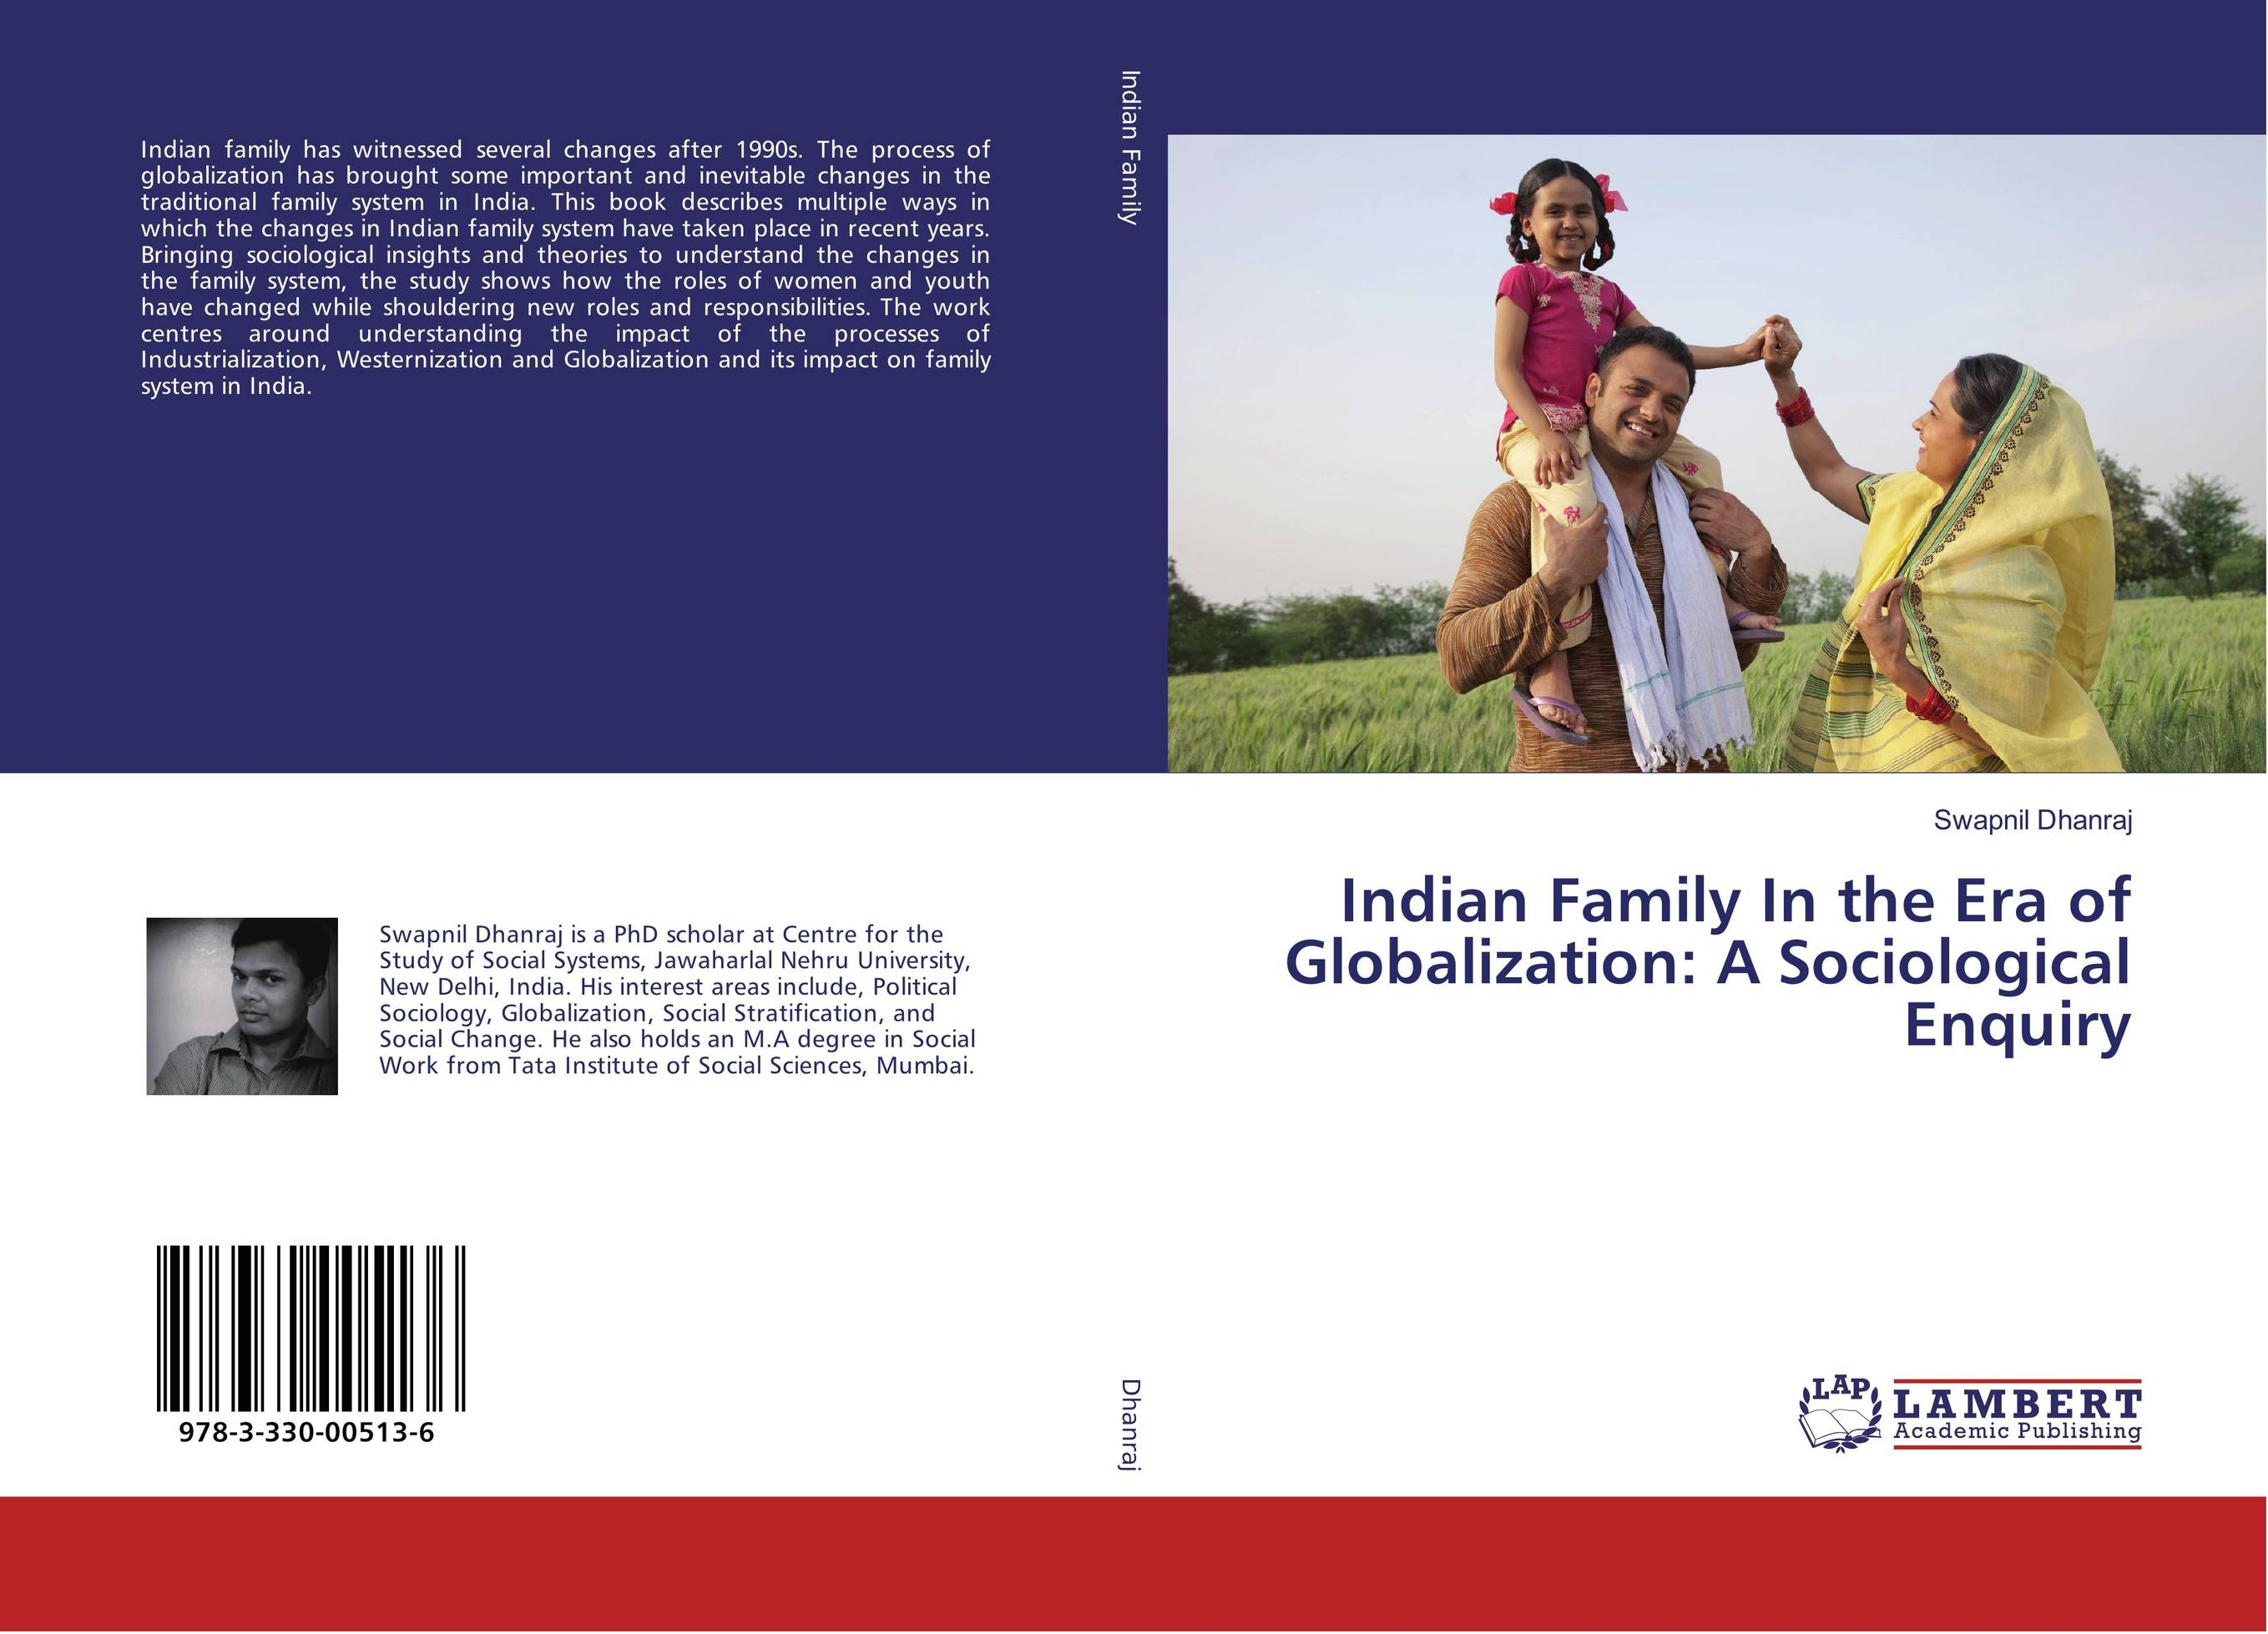 globalisation impact on institution of family in india sociology essay Globalization or globalisation is the  the brookings institution suggested this was  and more remain overlooked when assessing the impact of globalization.